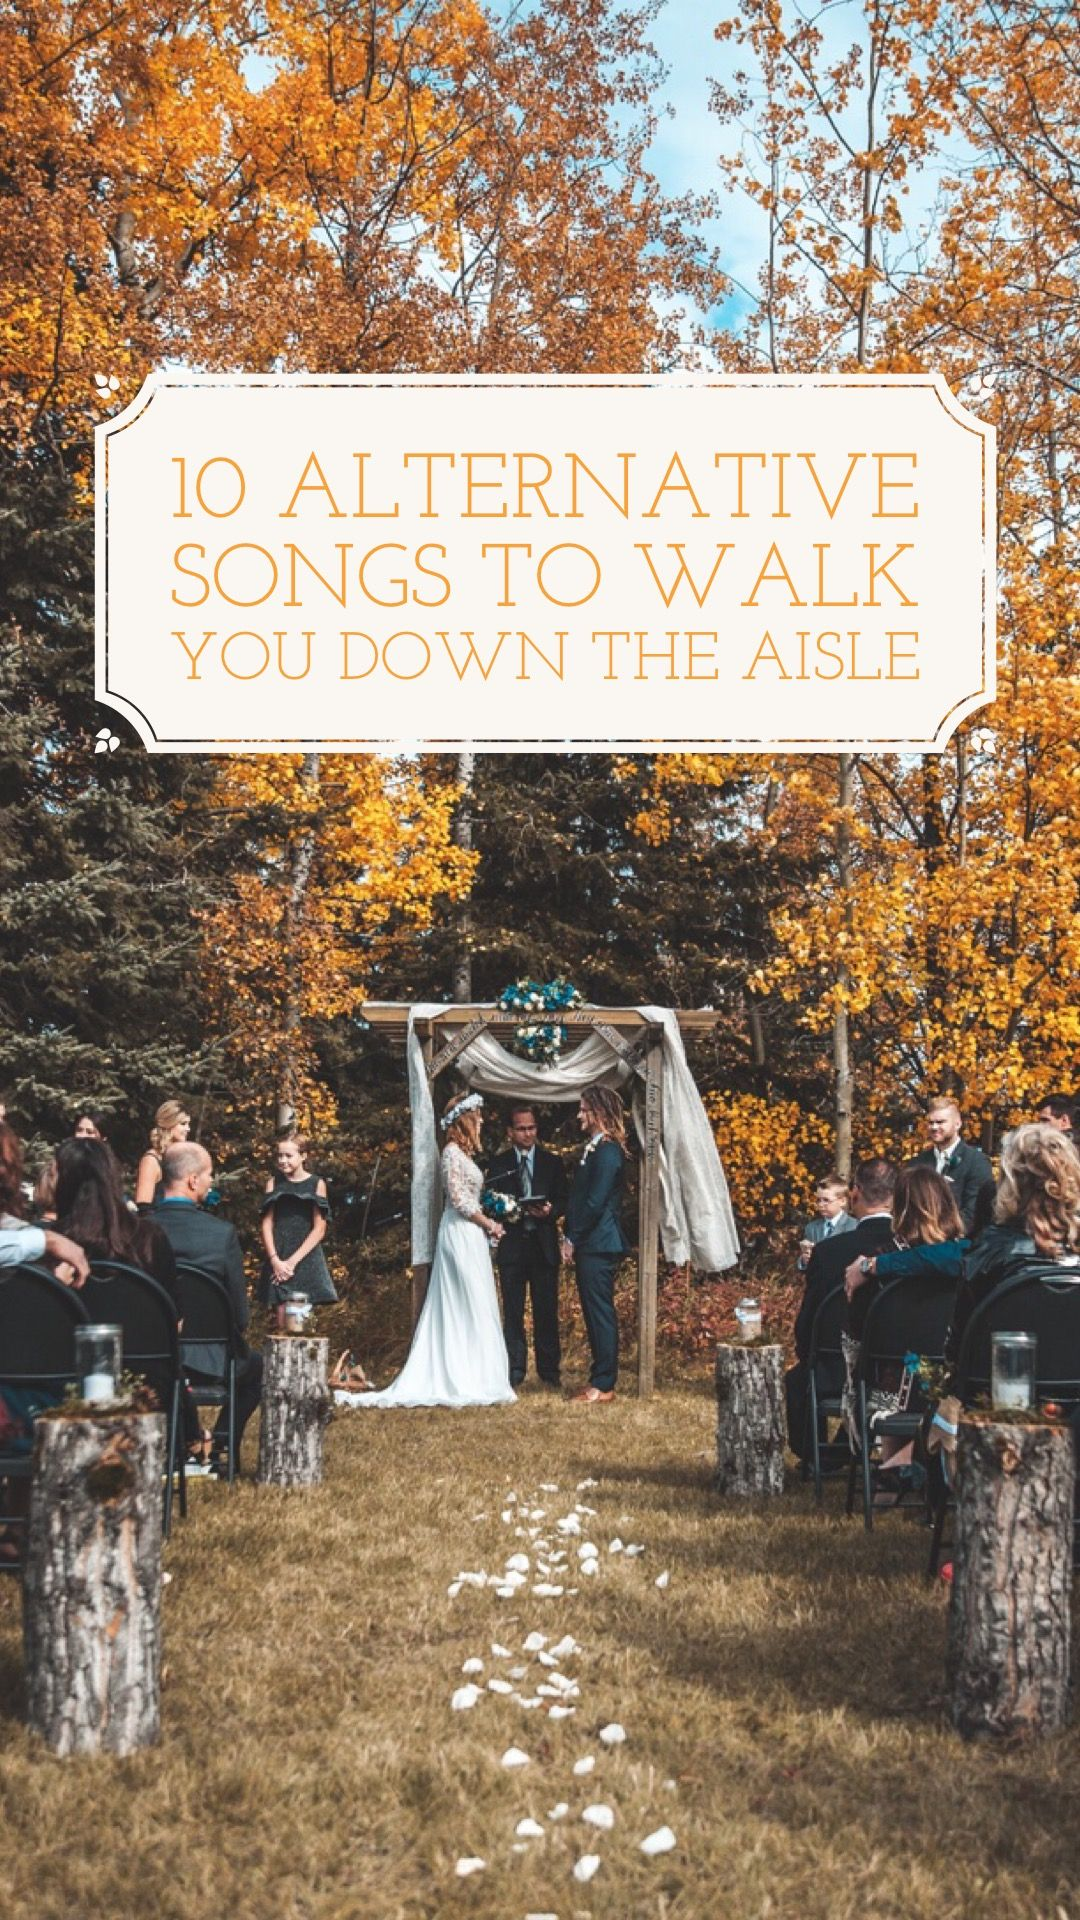 10 Alternative Songs To Walk You Down The Aisle On Your Wedding Day Old Wedding Songs Wedding Aisle Songs Best Wedding Songs